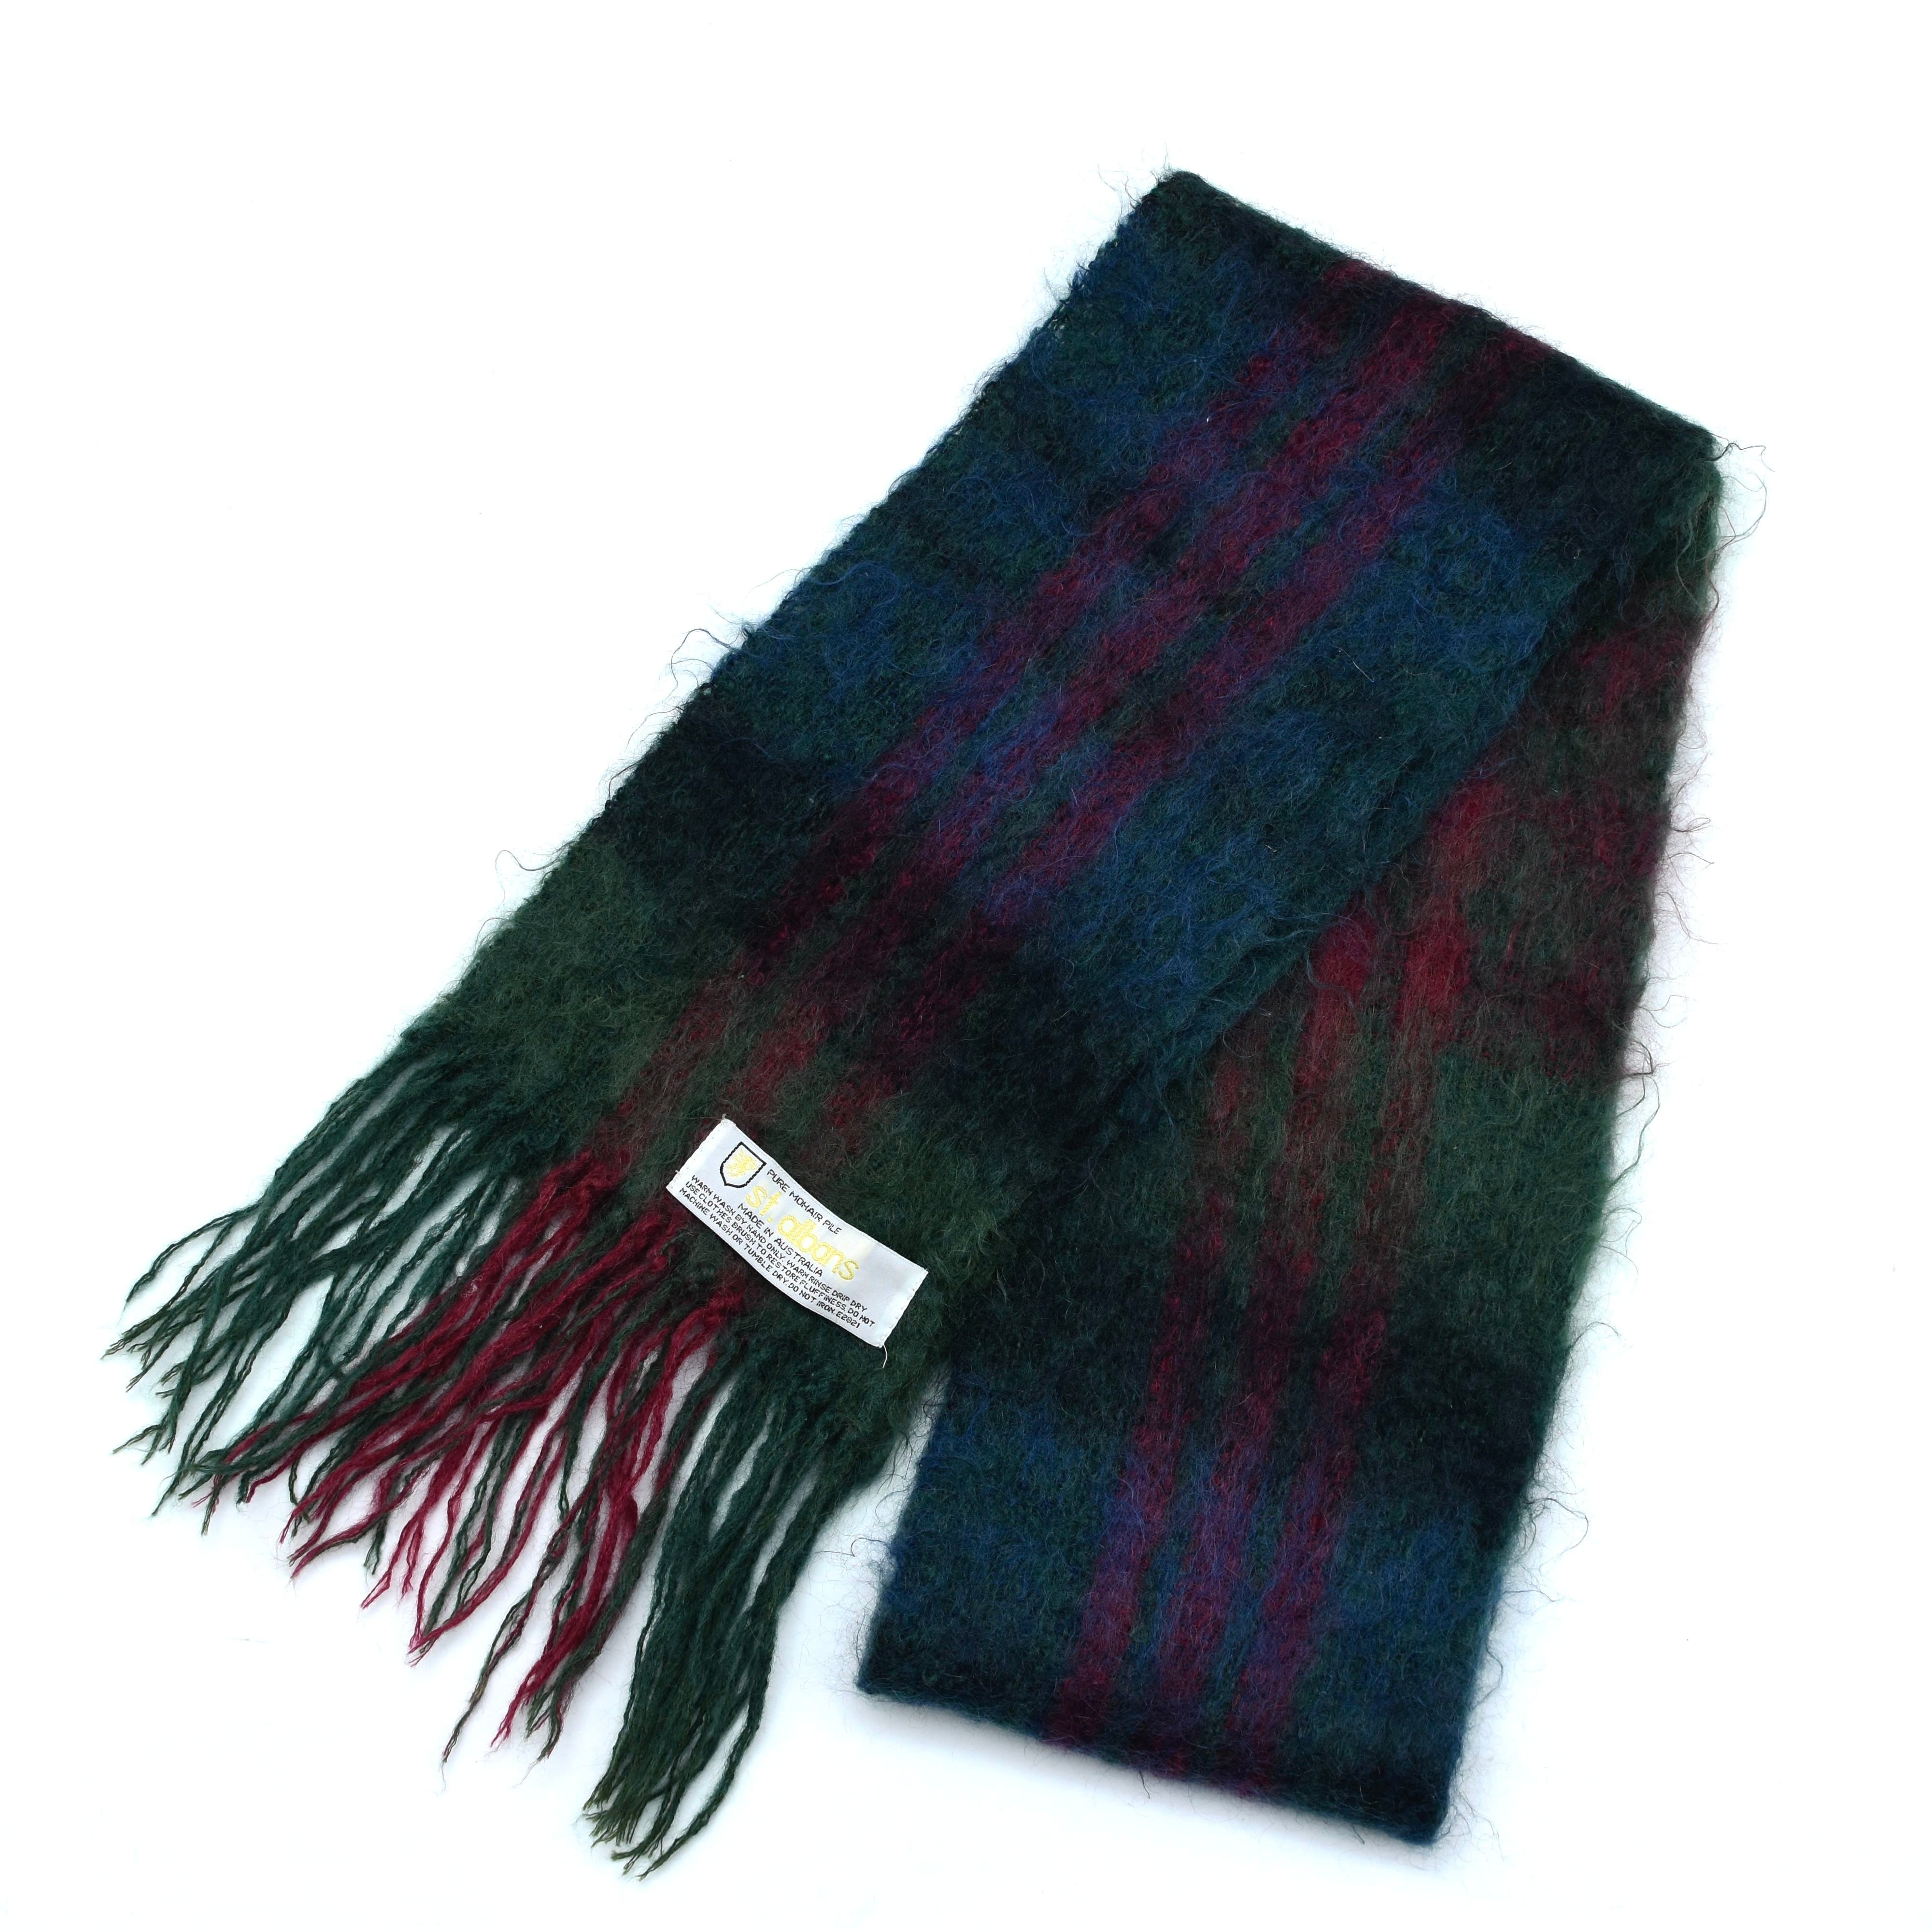 St.albans check mohair scarf